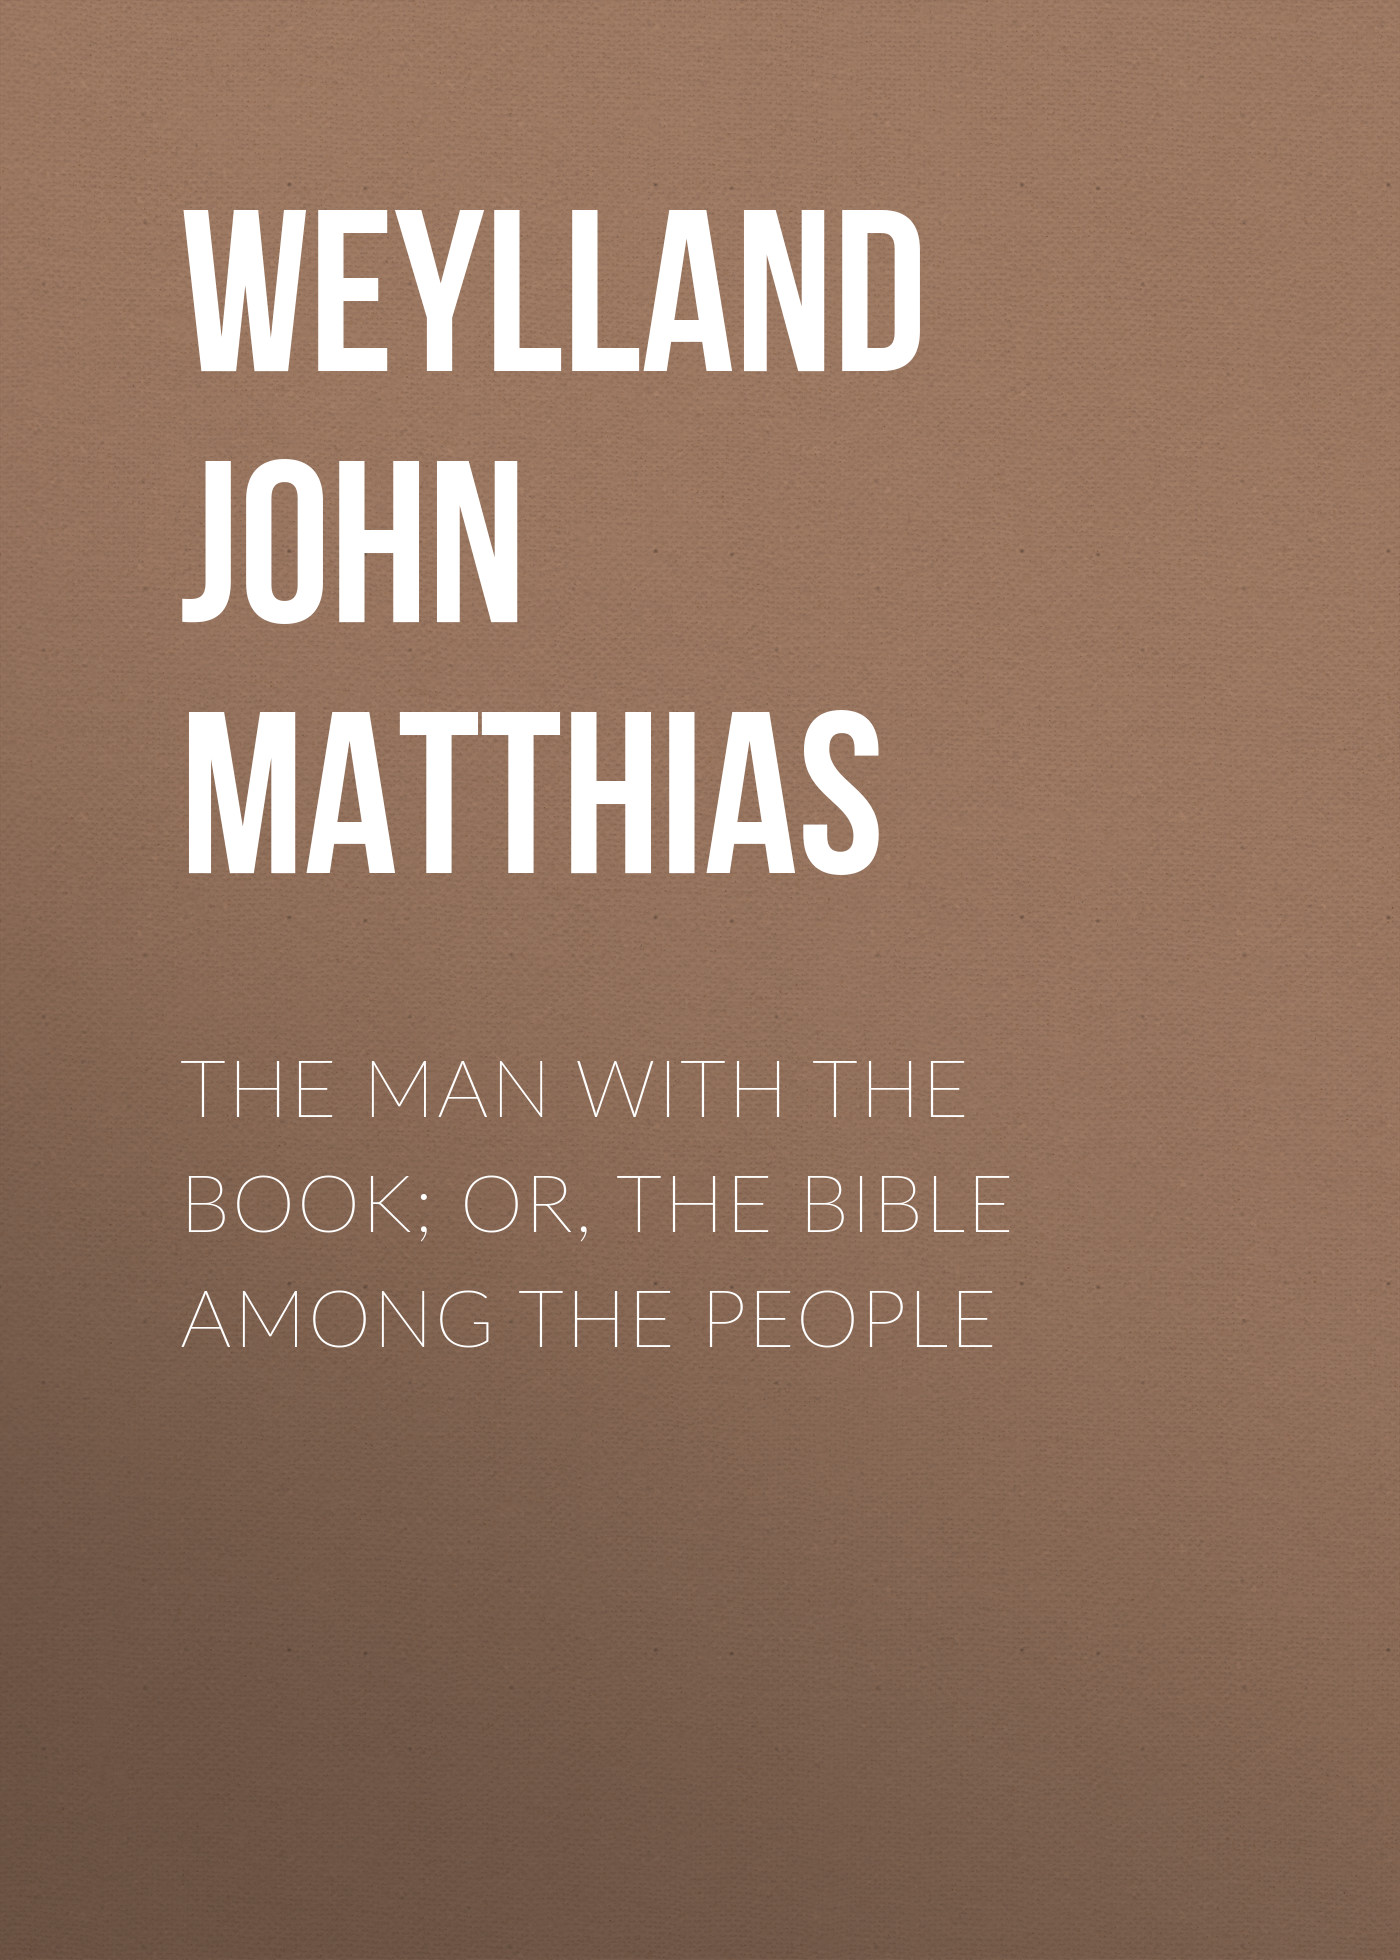 Weylland John Matthias The Man with the Book; or, The Bible Among the People цена и фото